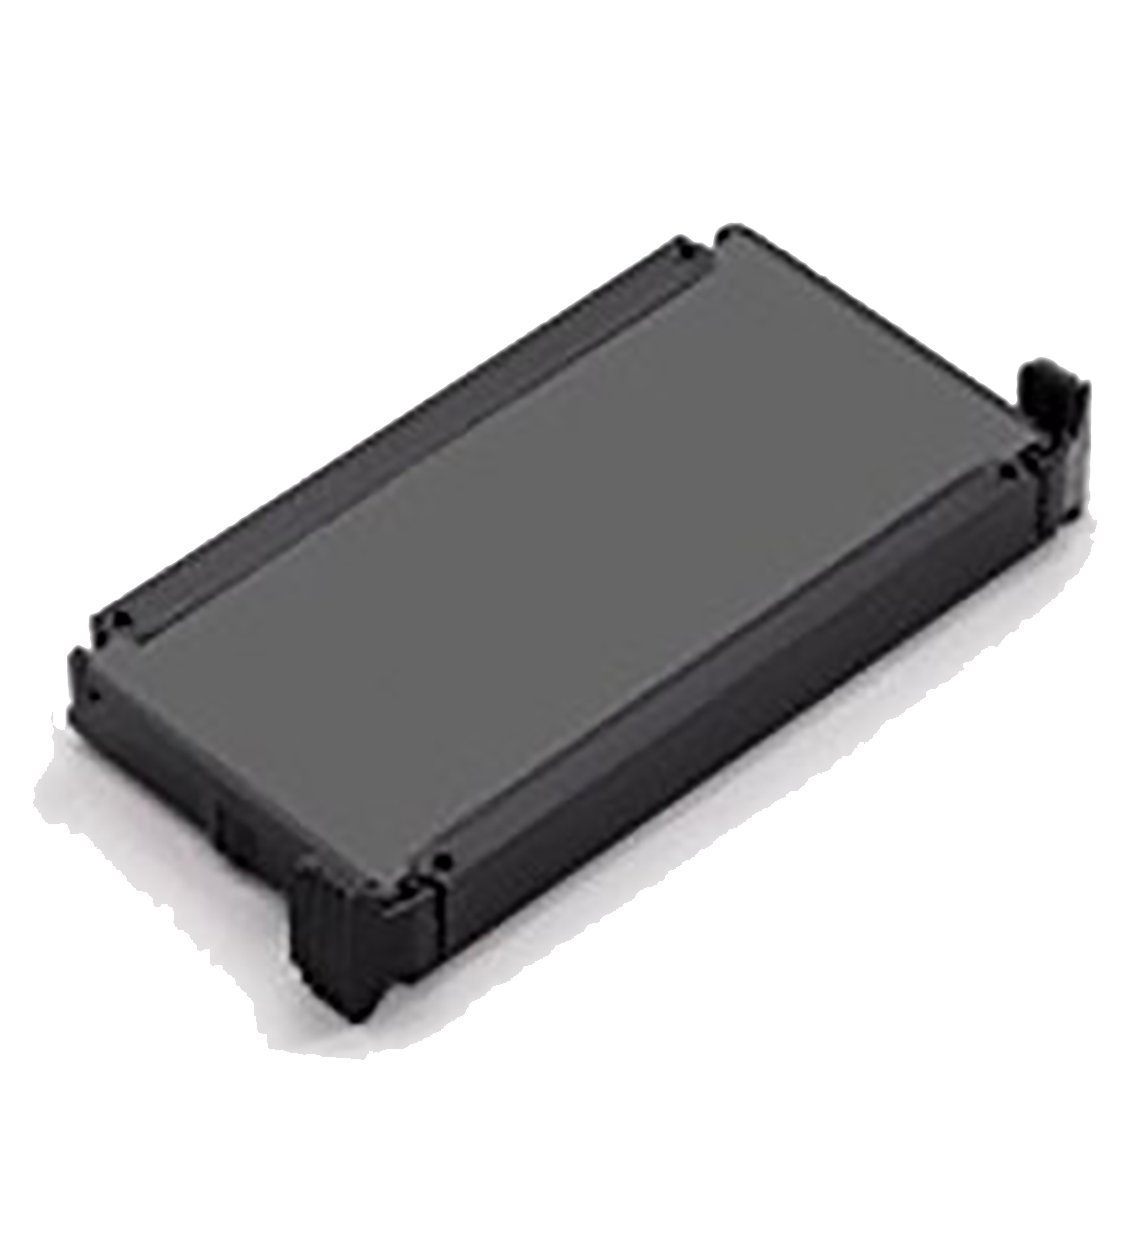 Replacement Pad for the Trodat Printy 4911, 4800,4820, 4822, 4846 (Black) by Trodat JYP TECHNICAL INC.